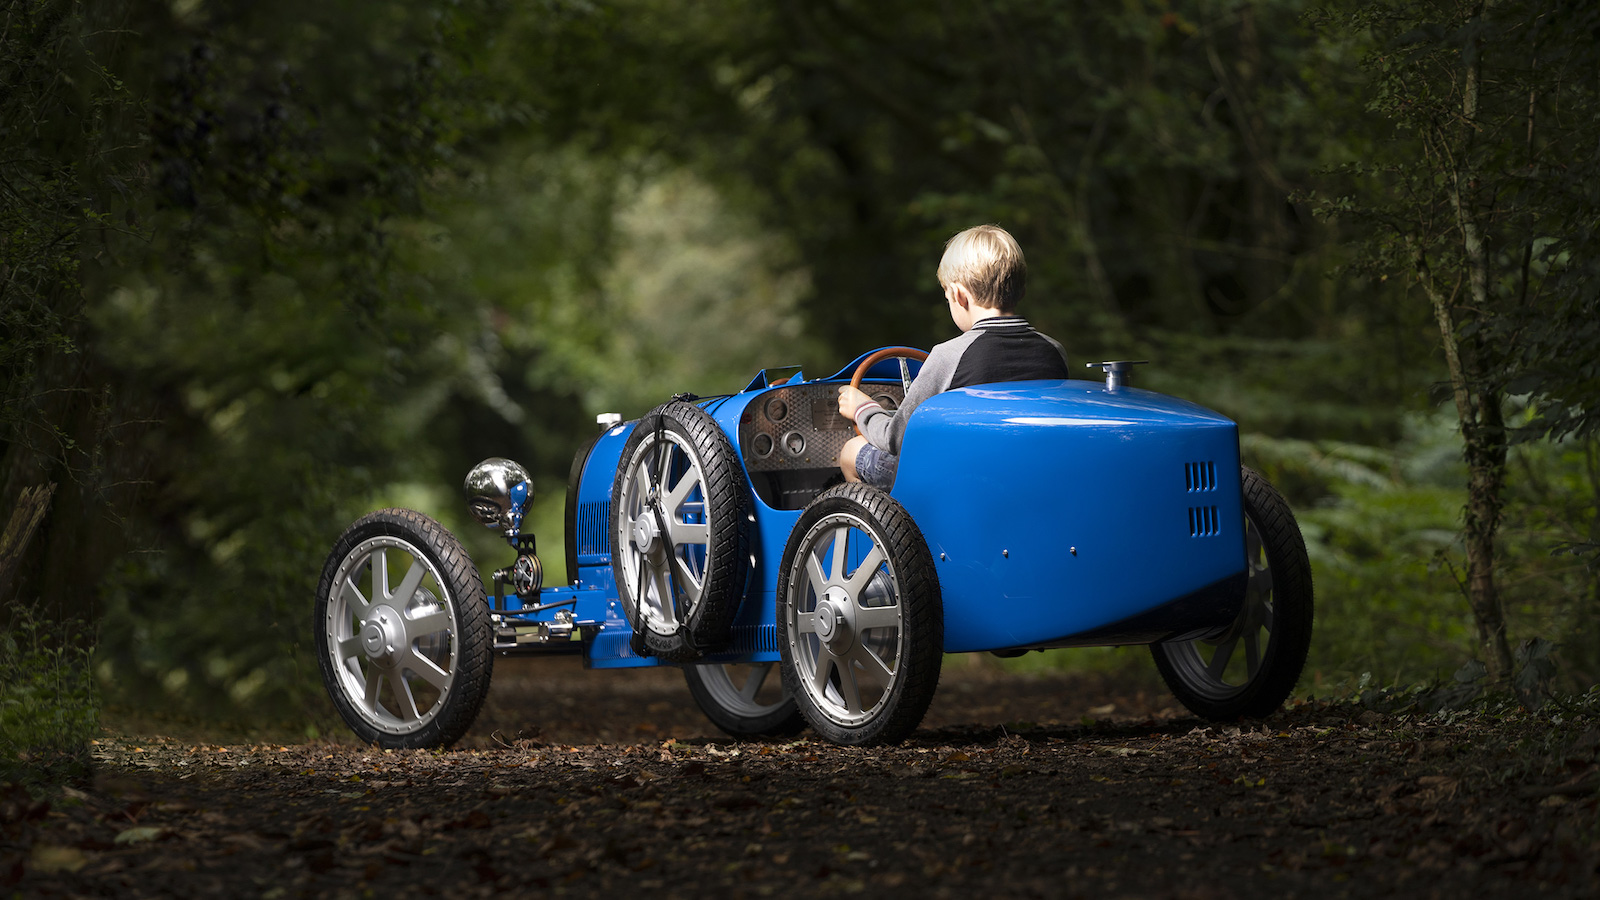 Bugatti Baby II mini car is designed for children and young adults